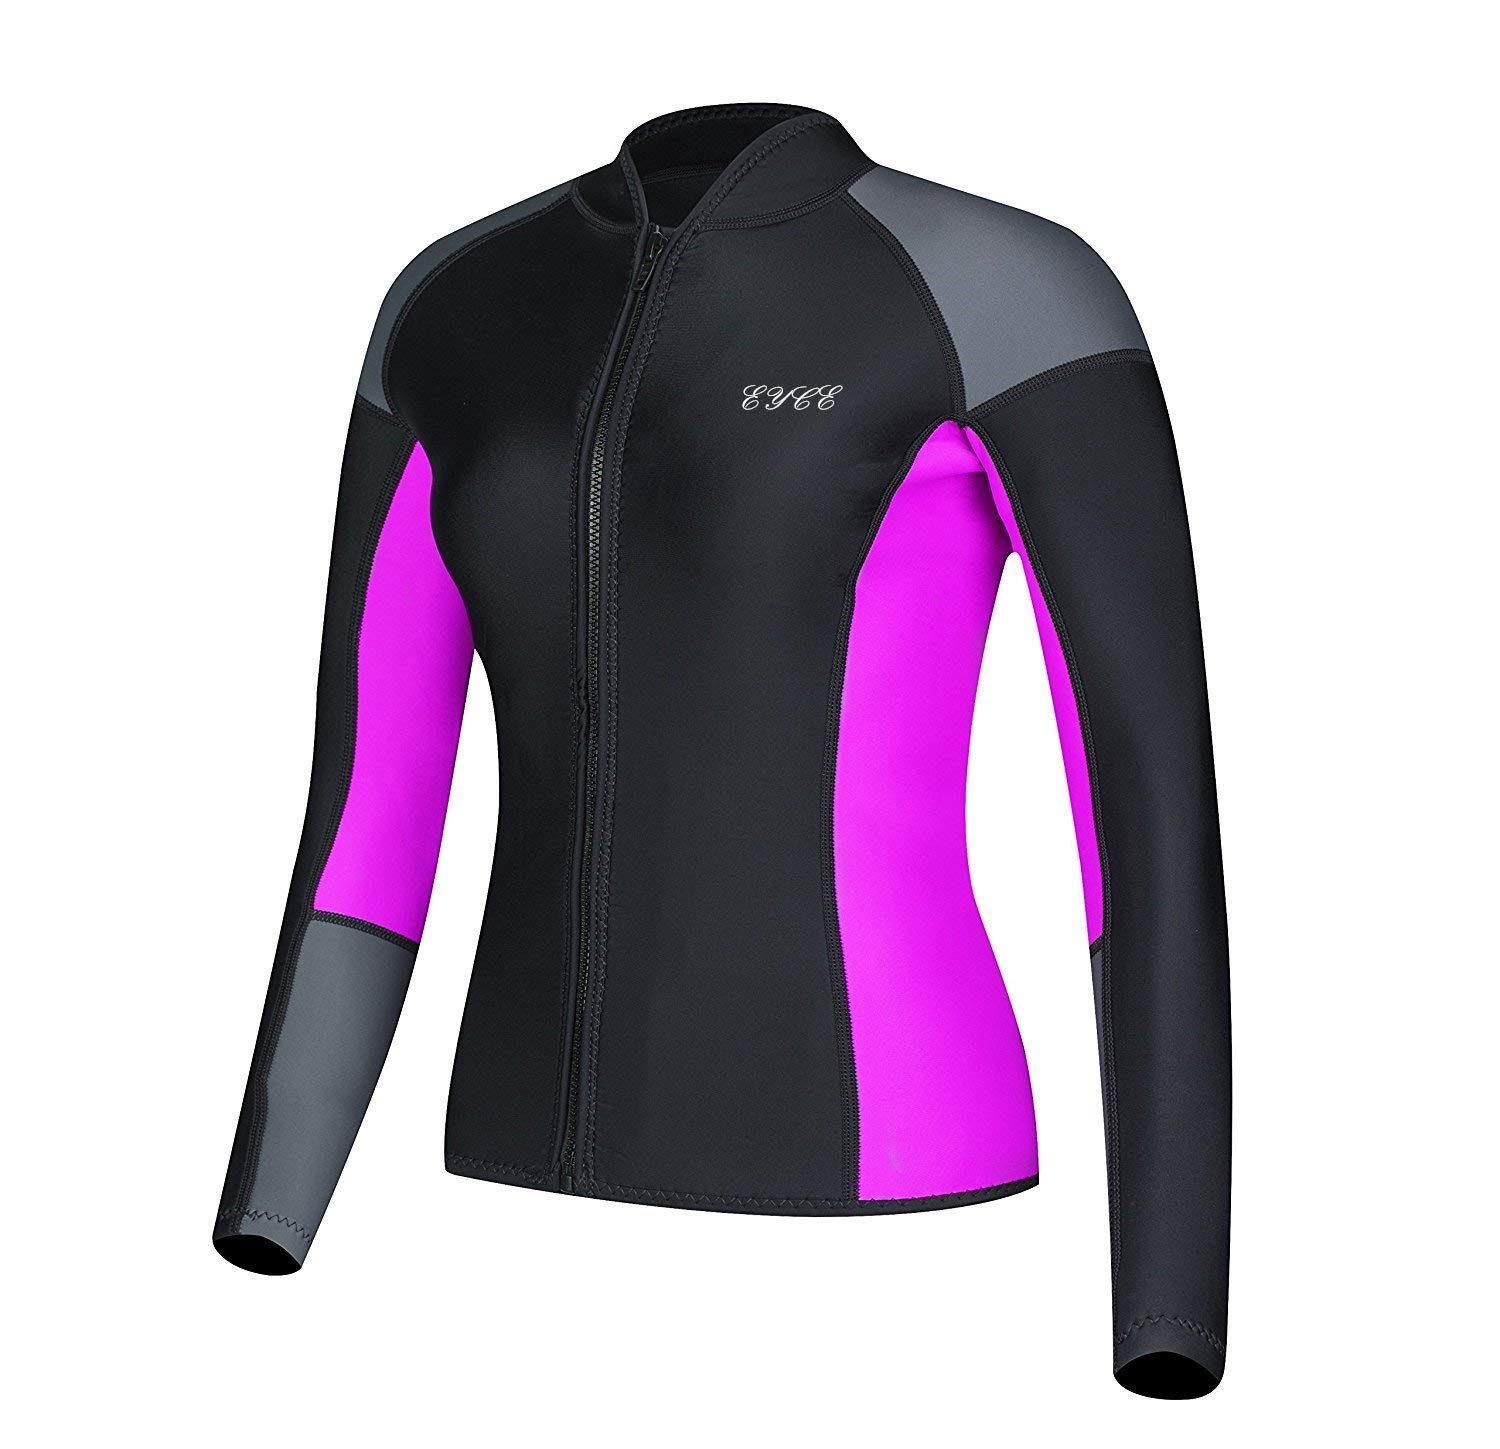 EYCE DIVE & SAIL Women's 3/2 mm Wetsuits Jacket Long Sleeve Neoprene Wetsuit Top (Grey/Purple, S = US 2) by EYCE DIVE & SAIL